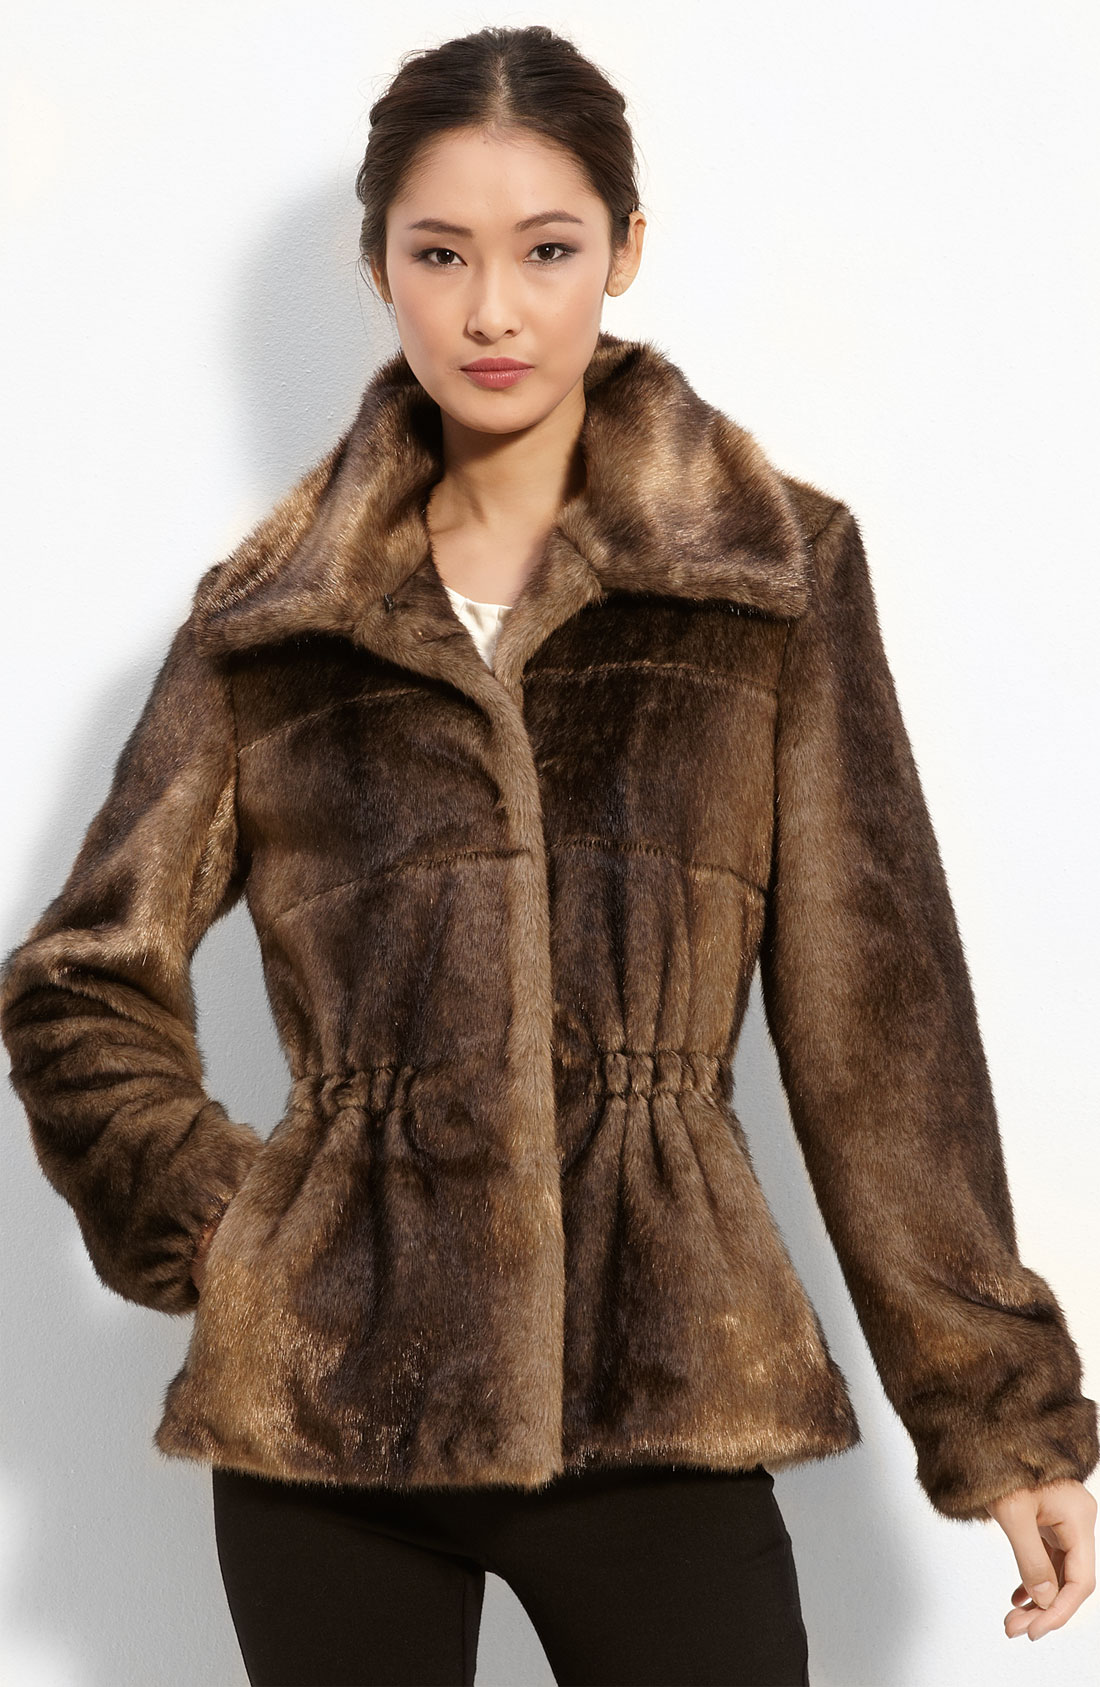 Sep 14,  · Good faux fur looks and feels like real fur and real fur can easily be painted another (unnatural) color. Sadly, real fur is being sold/mislabelled as faux fur, because of the growing costumer concerns about fur%().